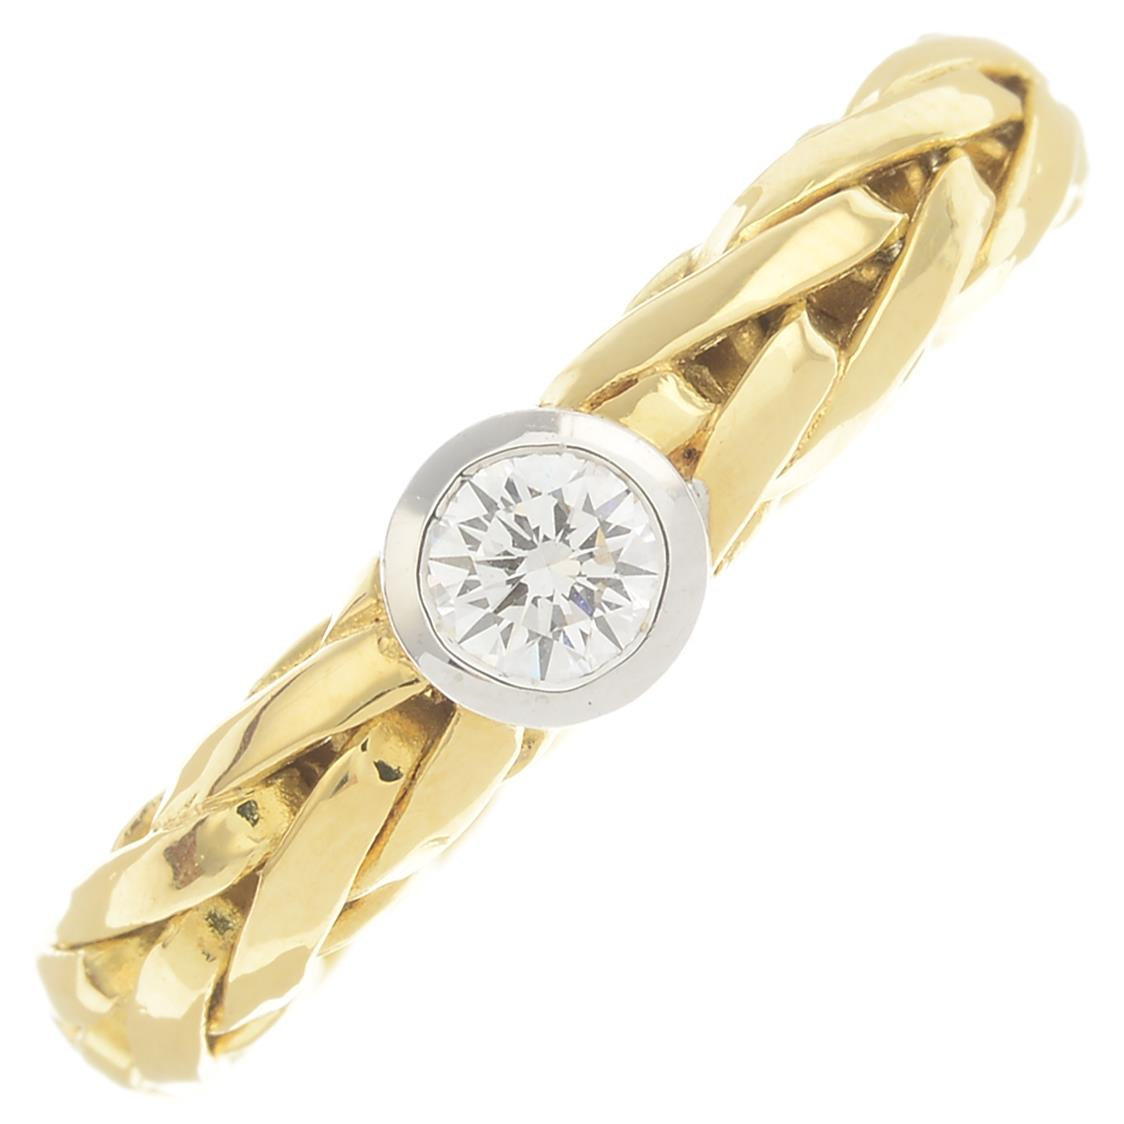 Lot 6 - An 18ct gold diamond single-stone ring.Diamond weight 0.25ct,